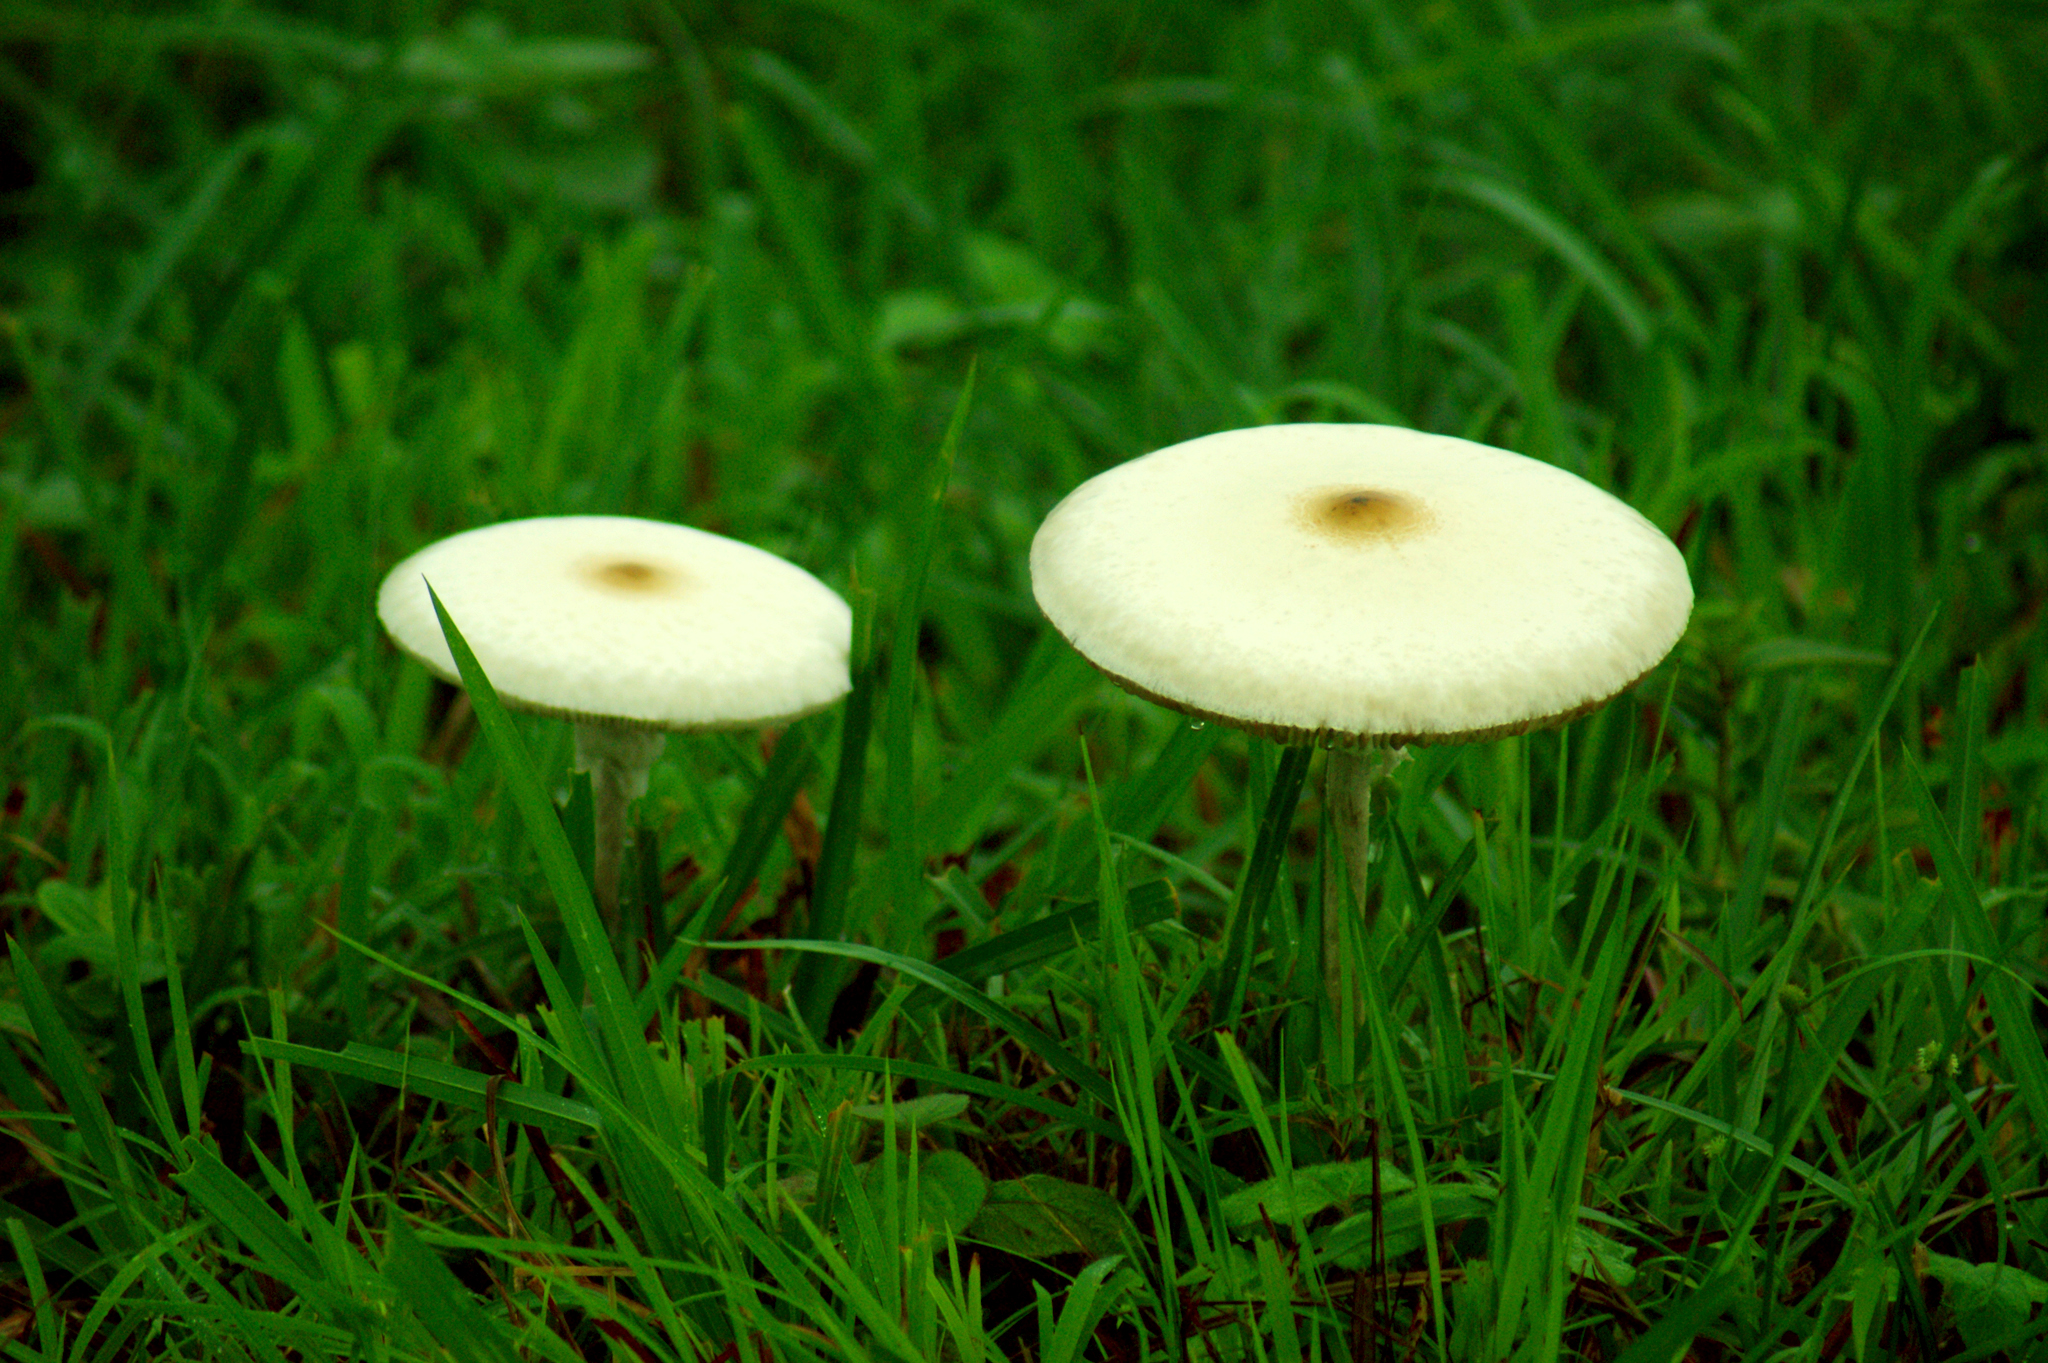 Mushrooms on grassland in Gavi